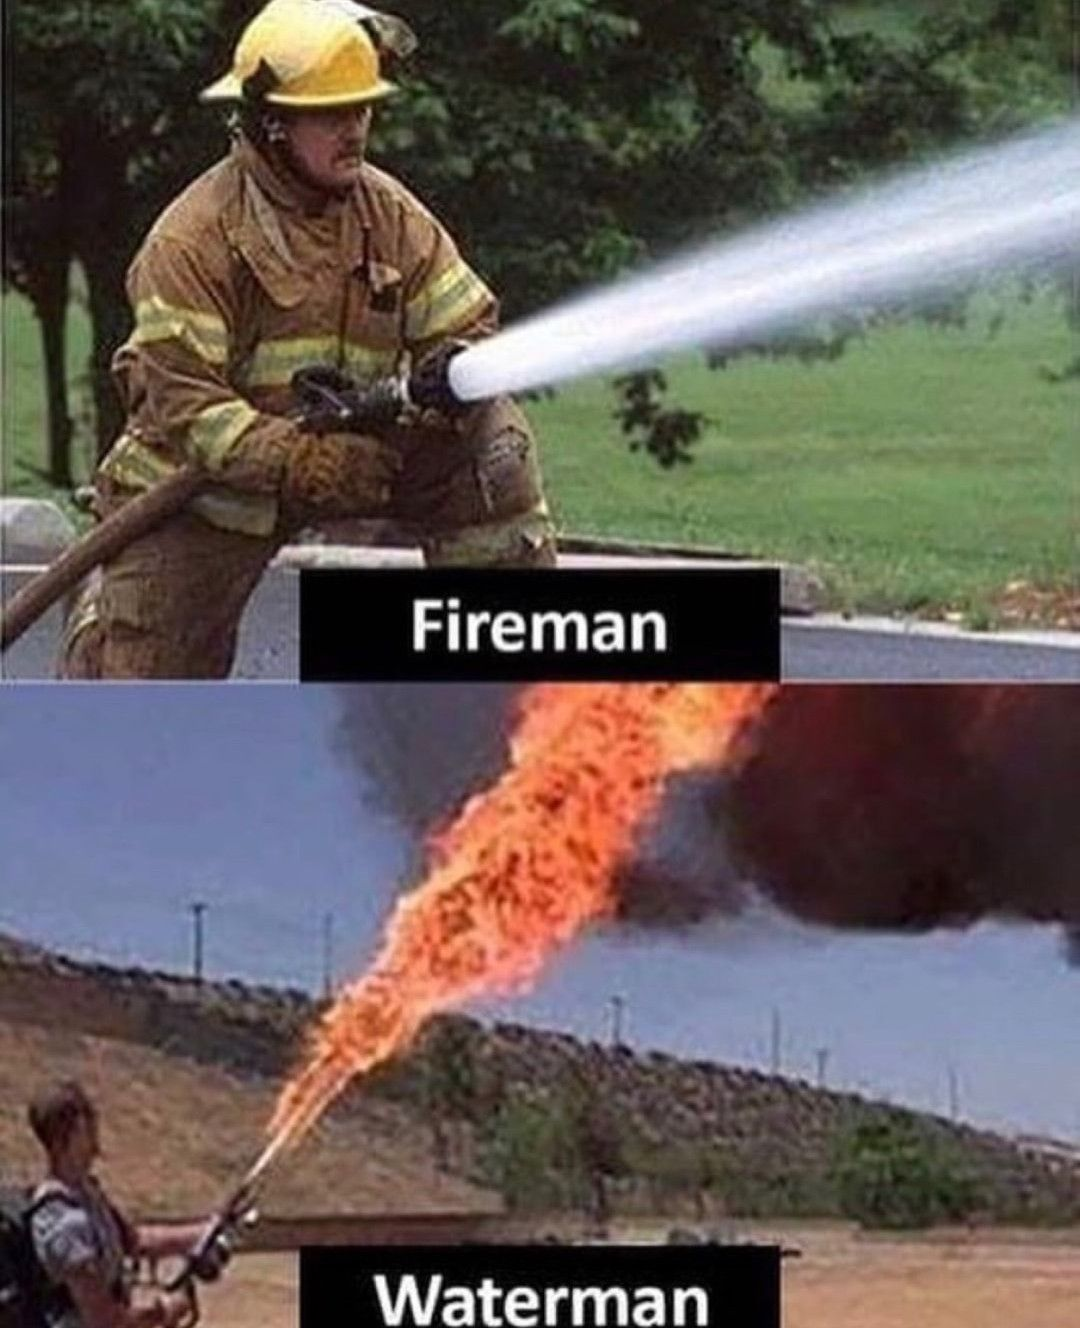 Fire, water, same thing